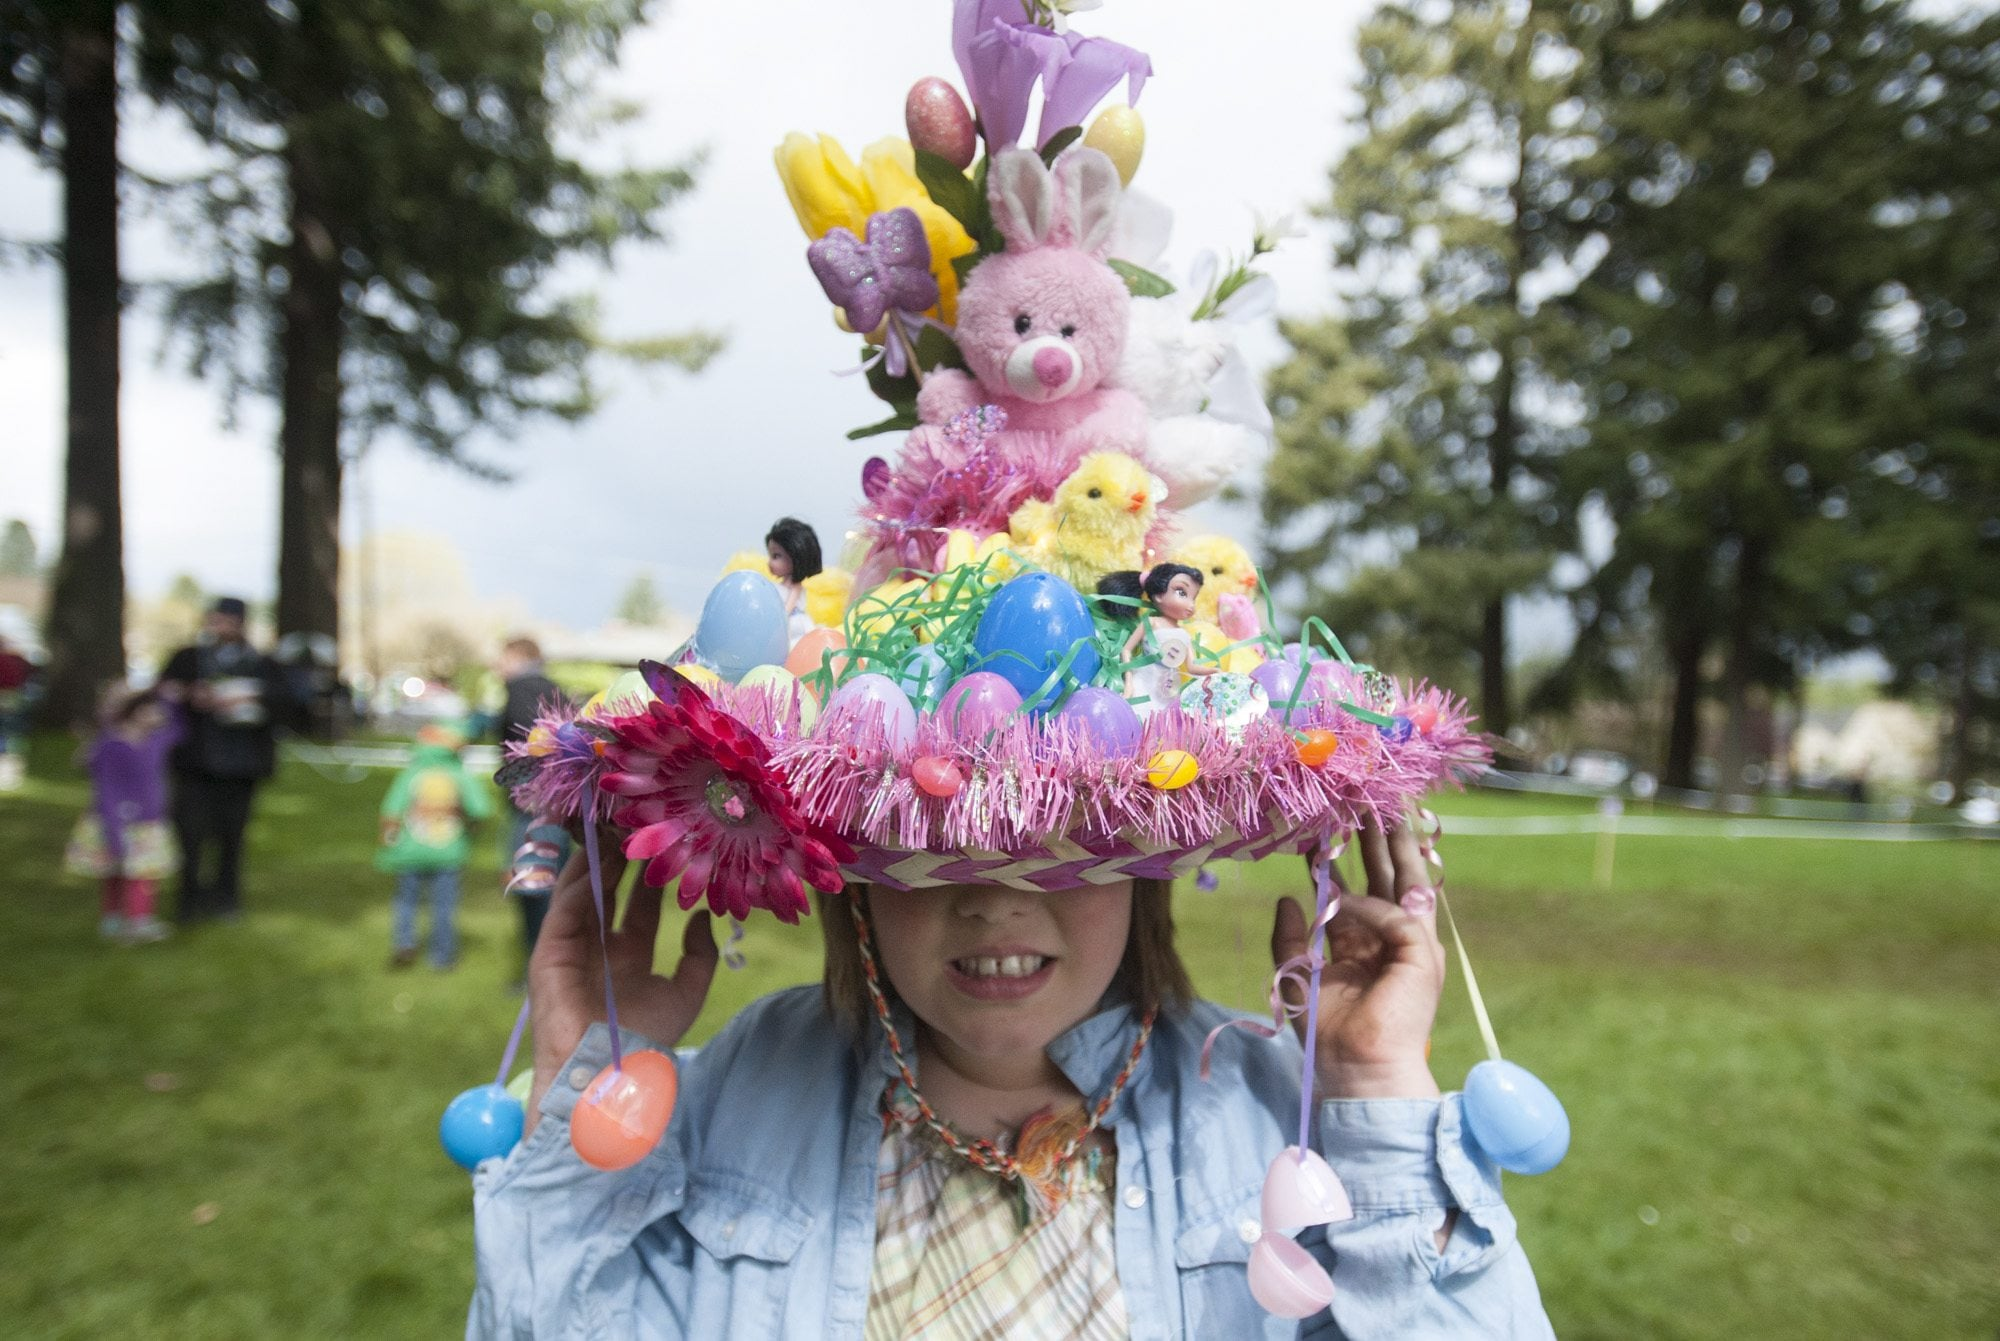 Jessica Rose, 9, wears a hat she decorated for an Easter bonnet competition Sunday at Crown Park in Camas. The girl took first place in her age group during the hat contest. (Photos by Natalie Behring/The Columbian)